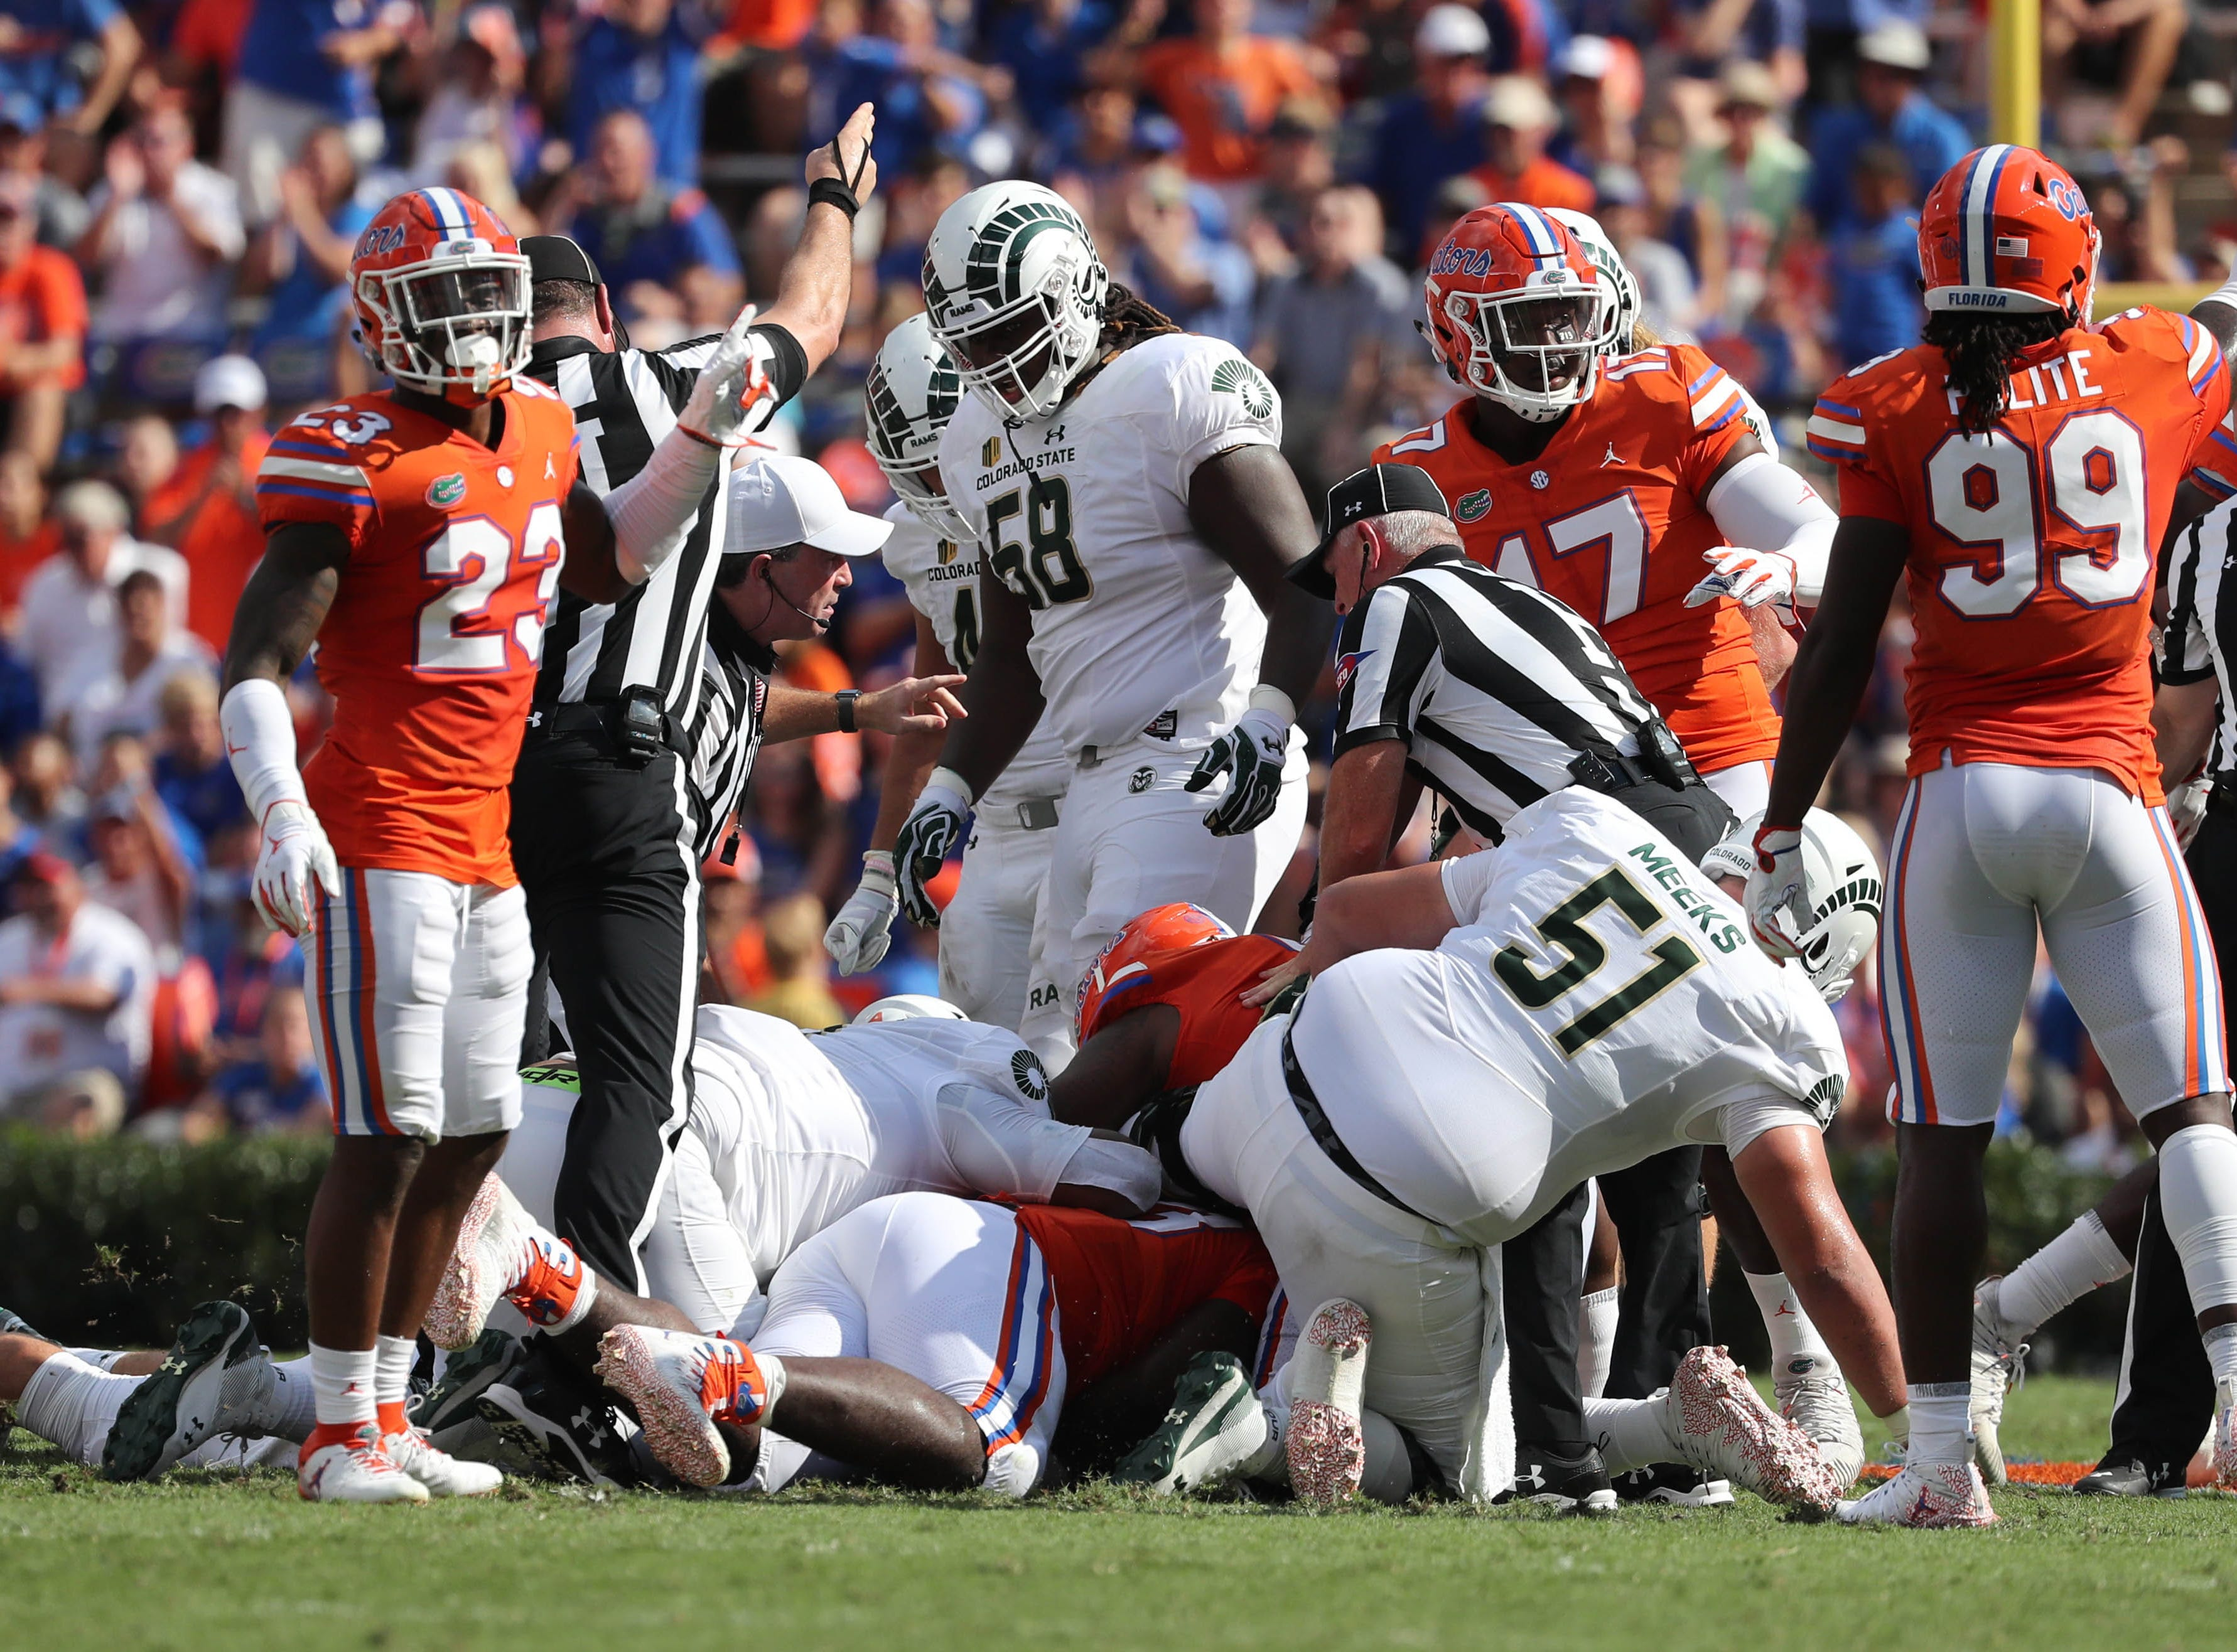 Sep 15, 2018; Gainesville, FL, USA; Florida Gators defensive end Elijah Conliffe (93) recover the fumble against the Colorado State Rams during the first quarter at Ben Hill Griffin Stadium. Mandatory Credit: Kim Klement-USA TODAY Sports